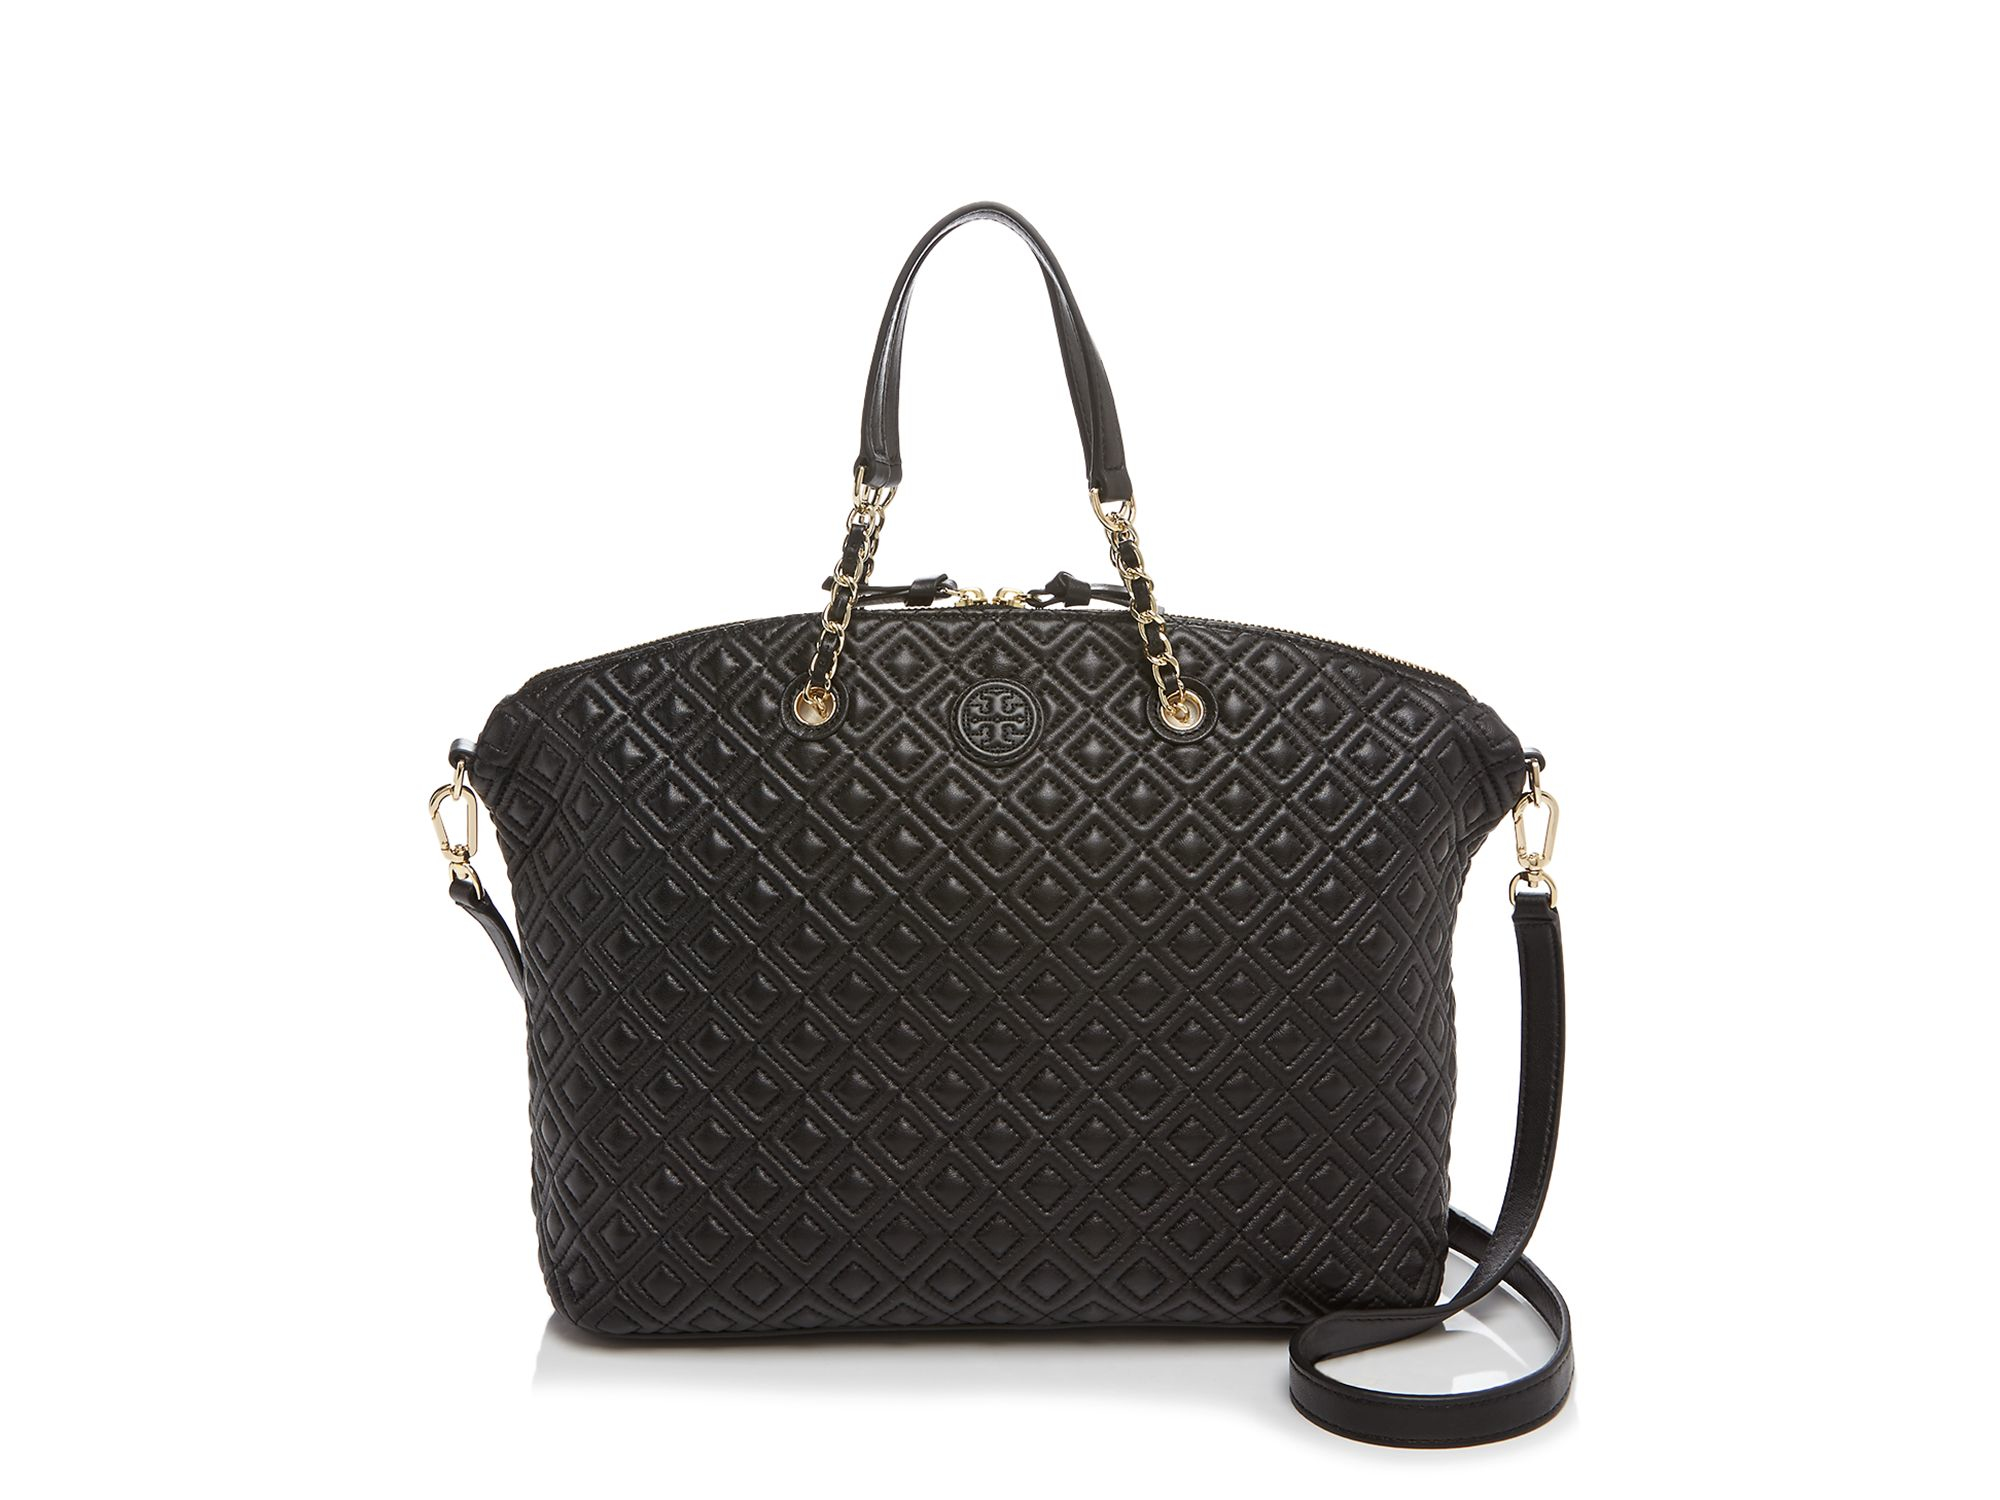 Tory burch Marion Quilted Slouchy Satchel in Black